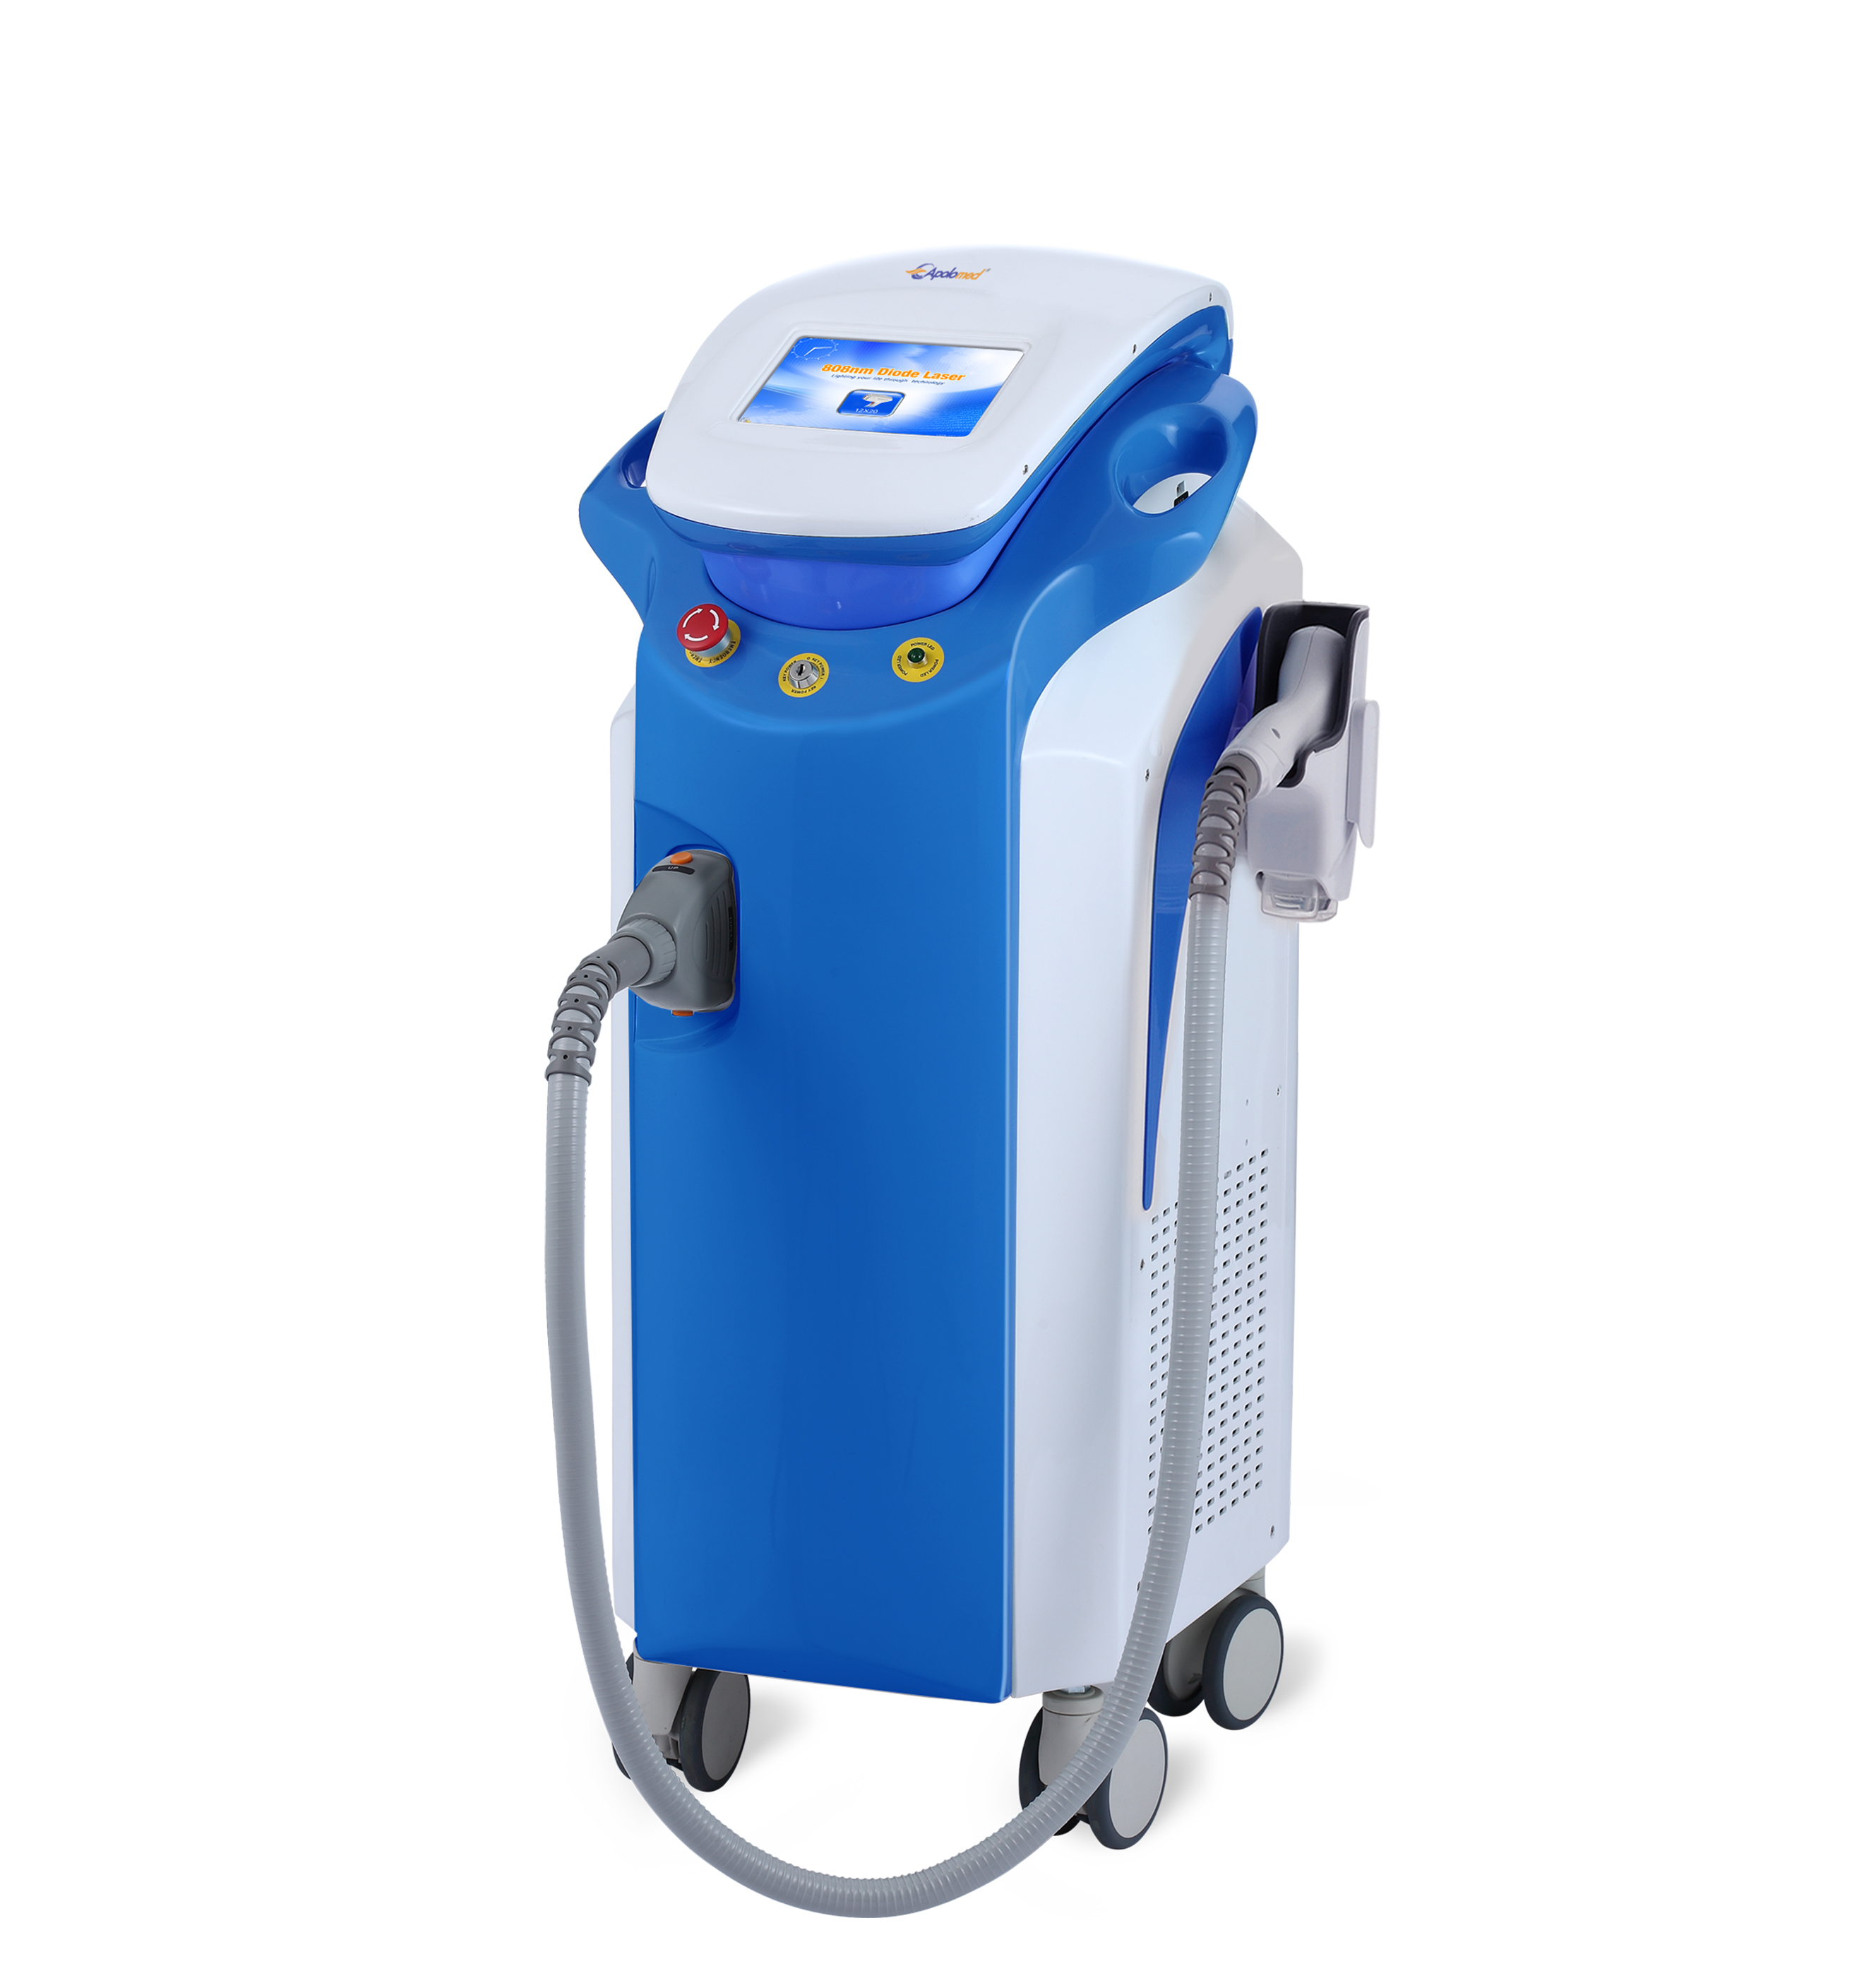 China New Product Ipl Opt Machine -